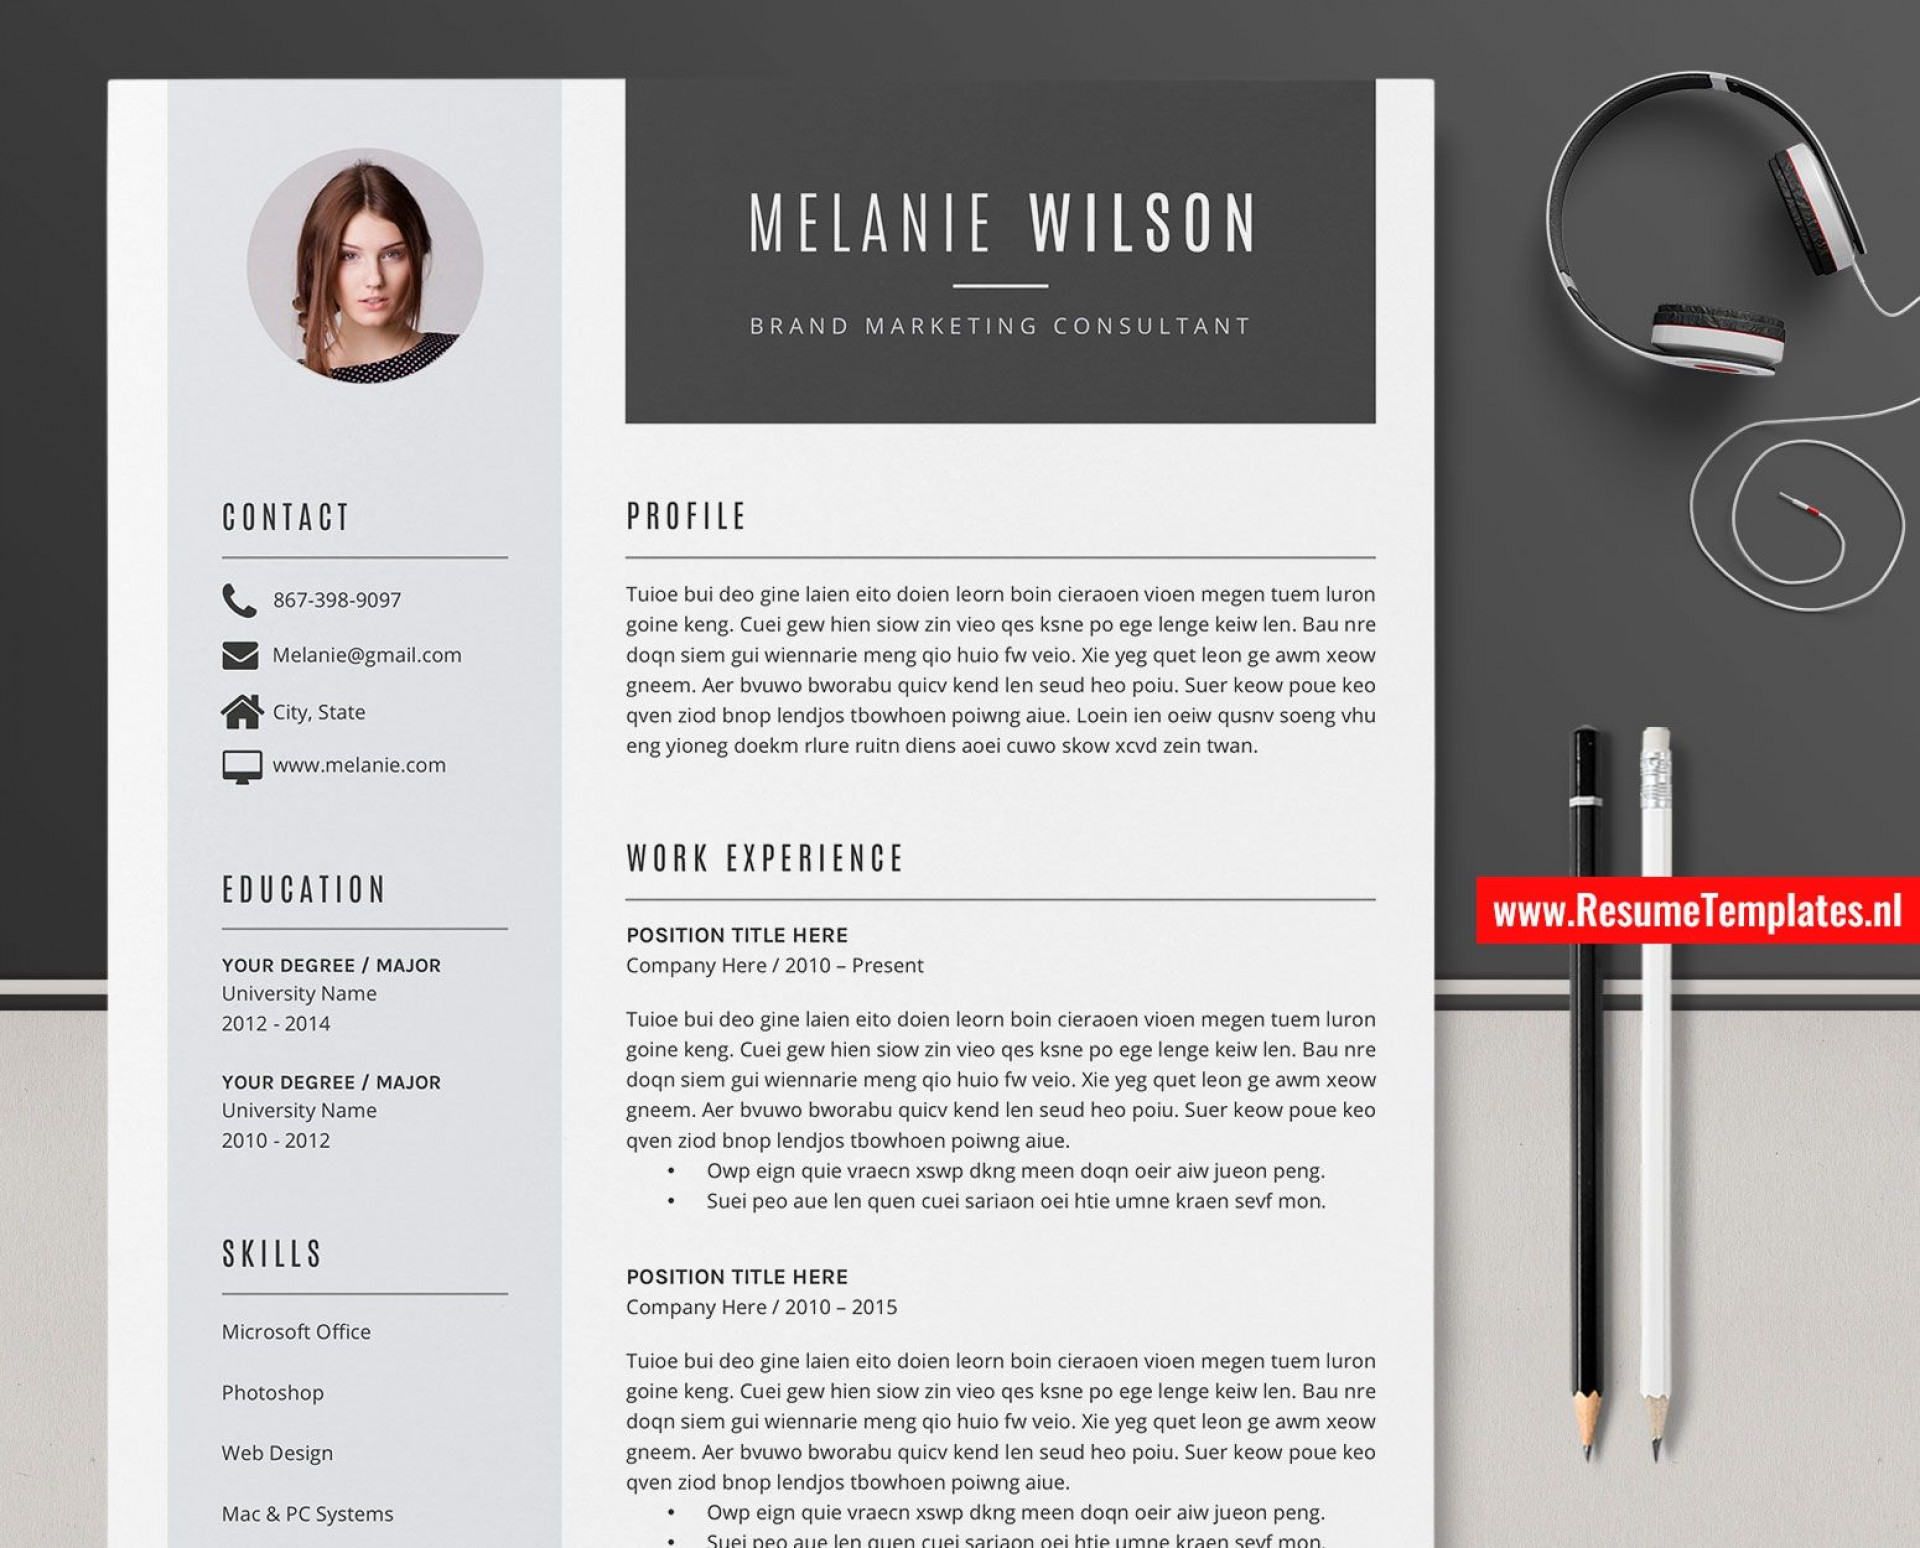 010 Formidable Curriculum Vitae Word Template Inspiration  Templates Download M 2019 Cv Free1920